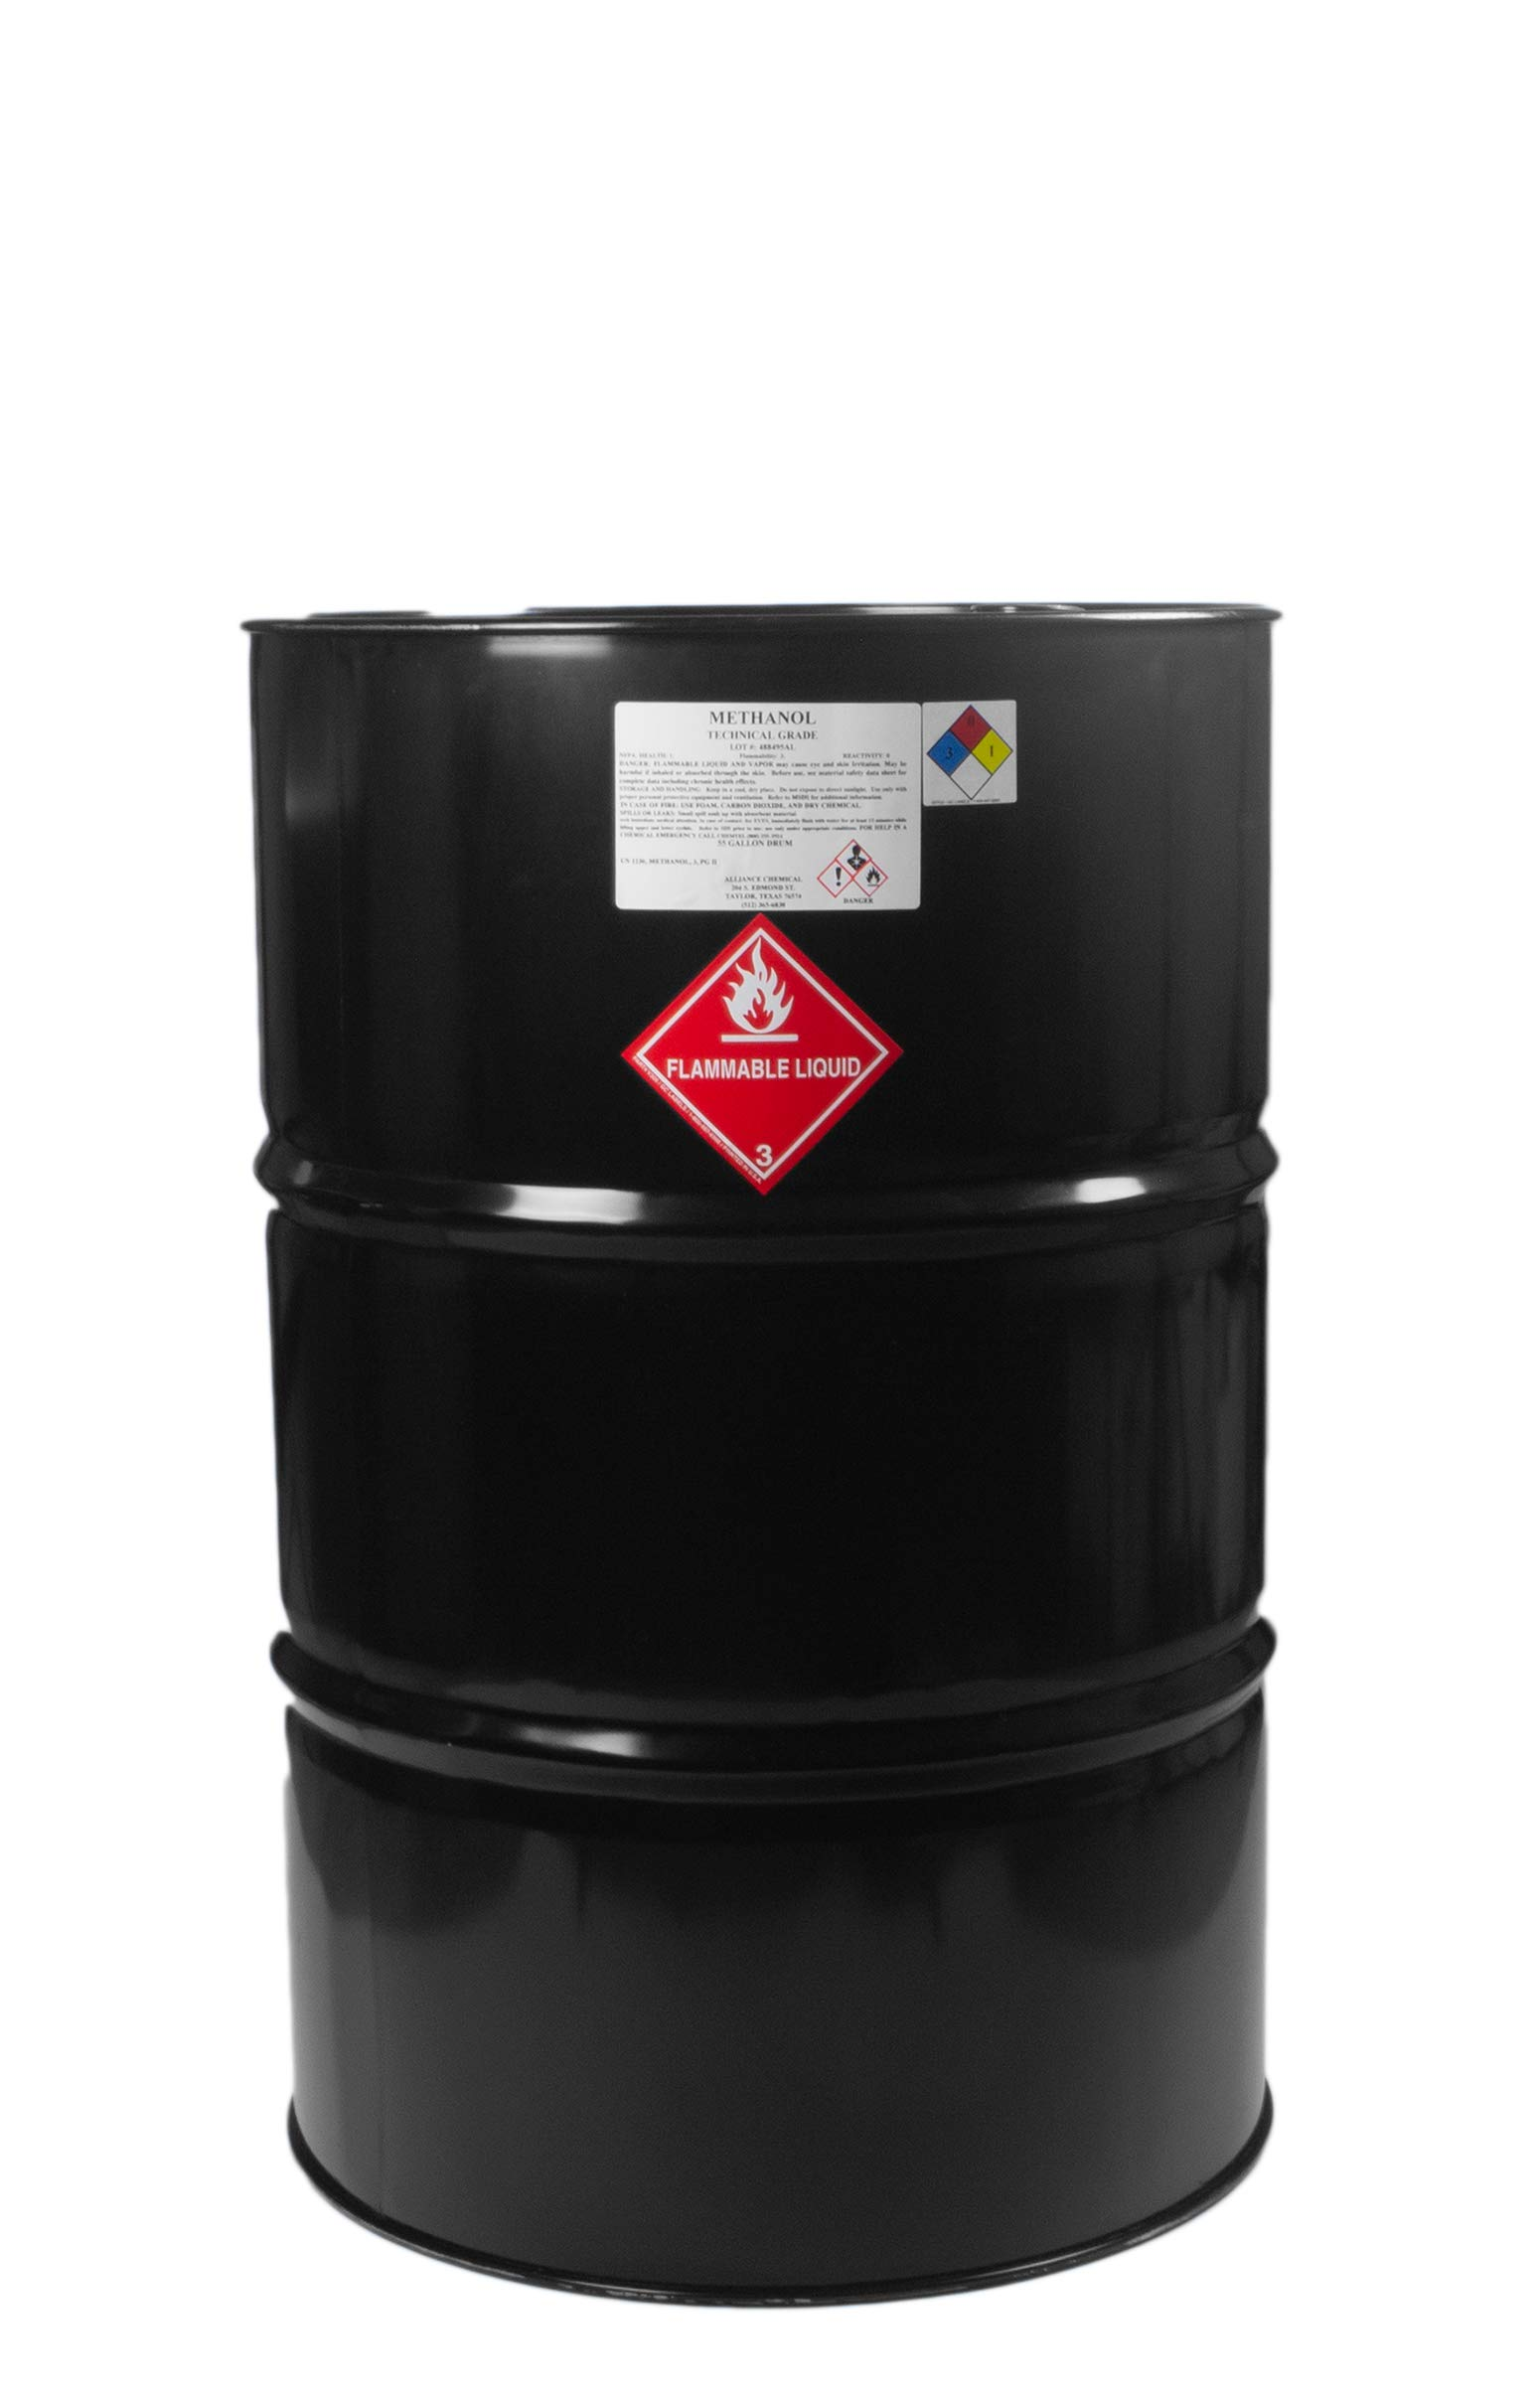 Methanol Technical Grade 55 Gallon Drum